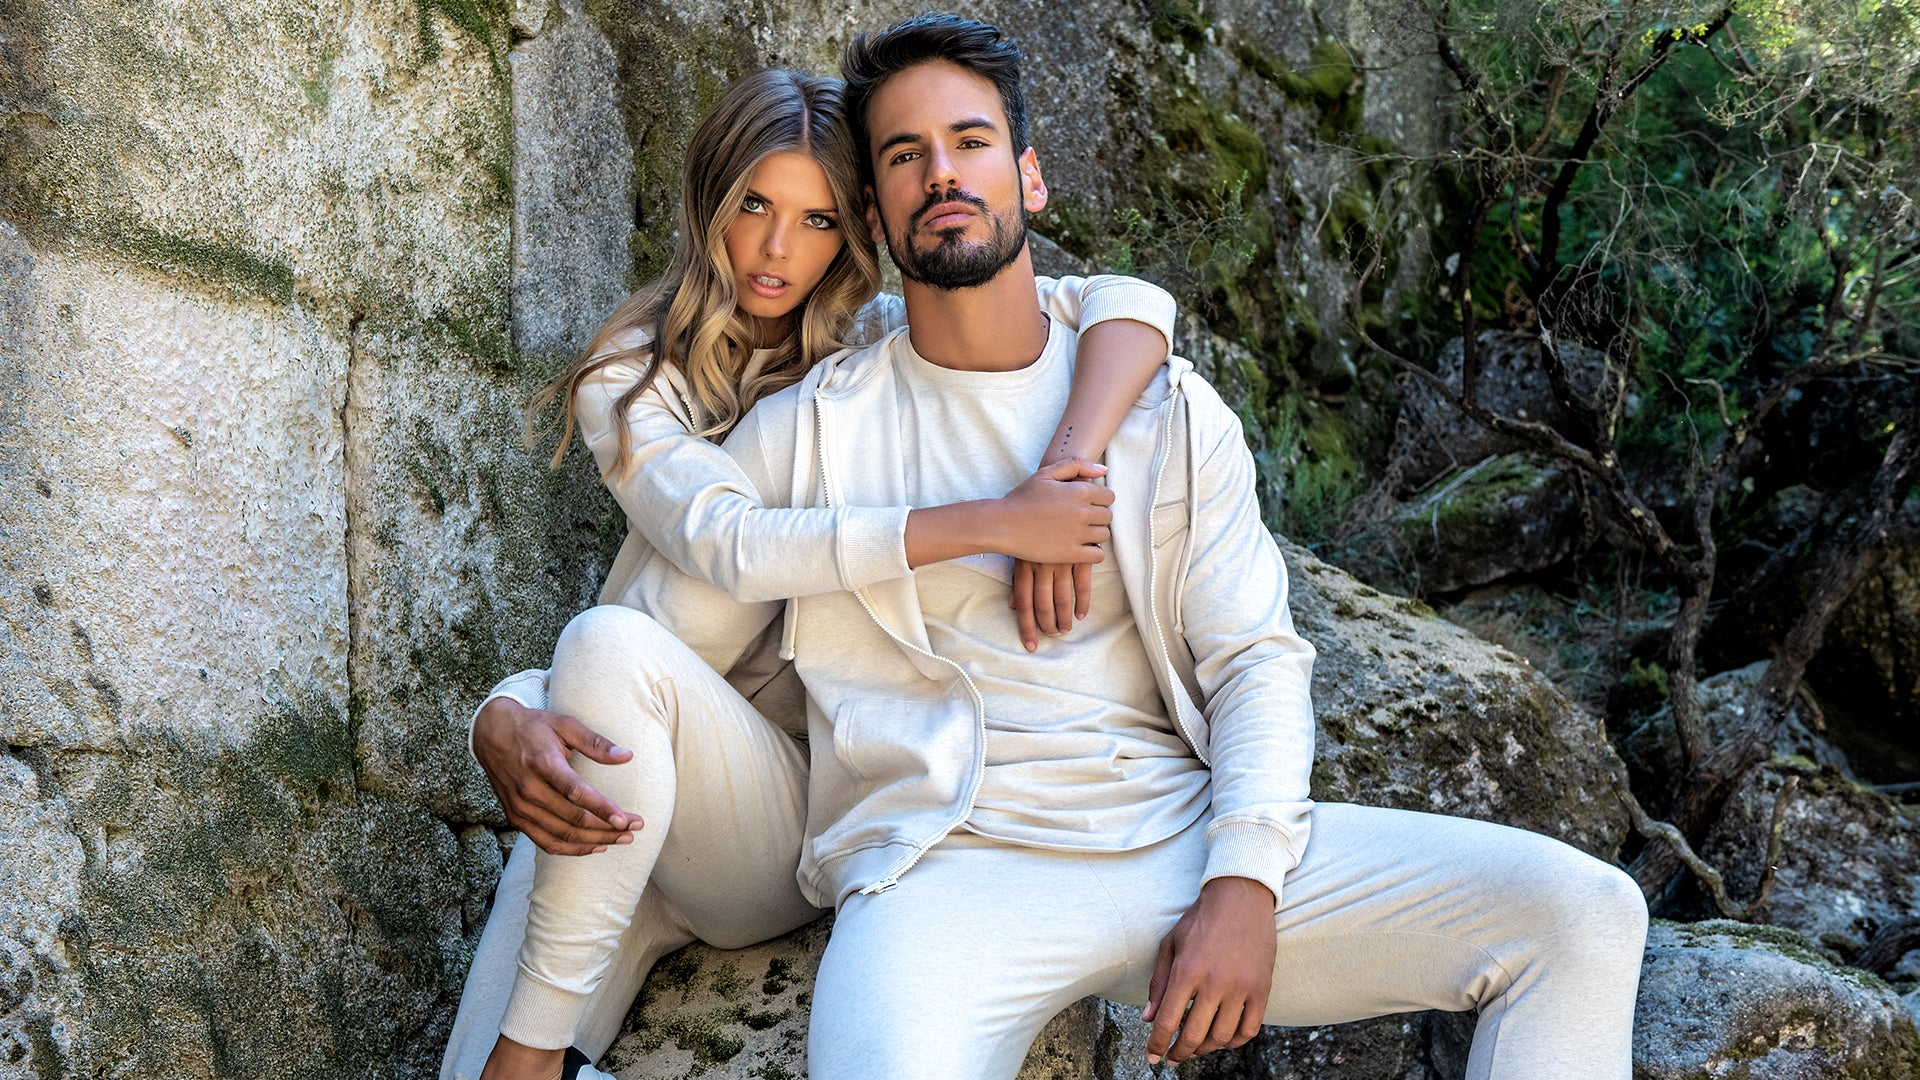 man and woman wearing Gianni Kavanagh's sustainable and ecological clothes